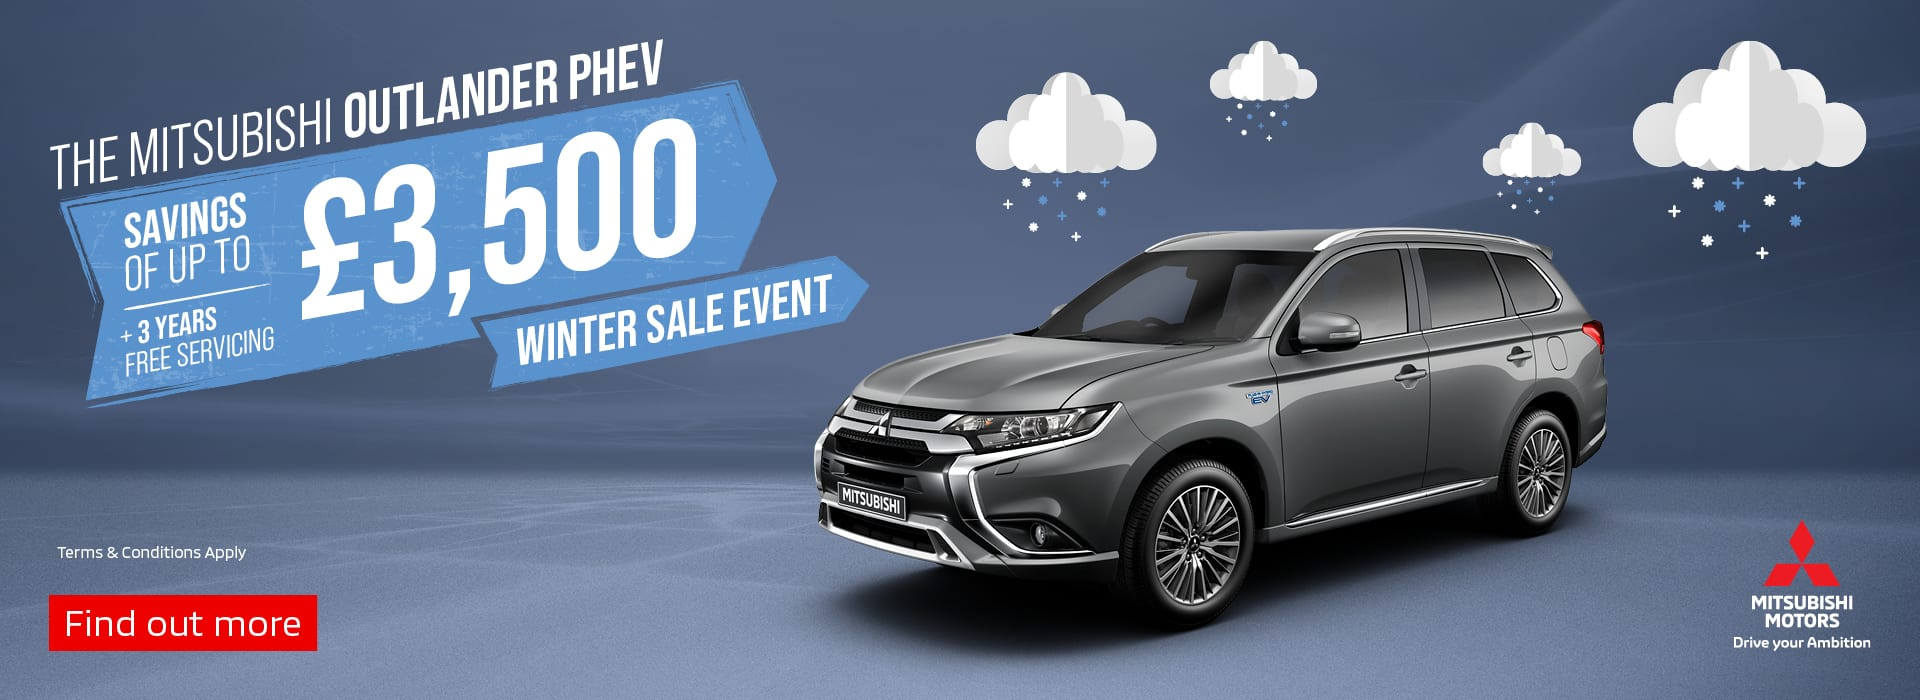 Outlander PHEV Event Web Banner 1920x700px